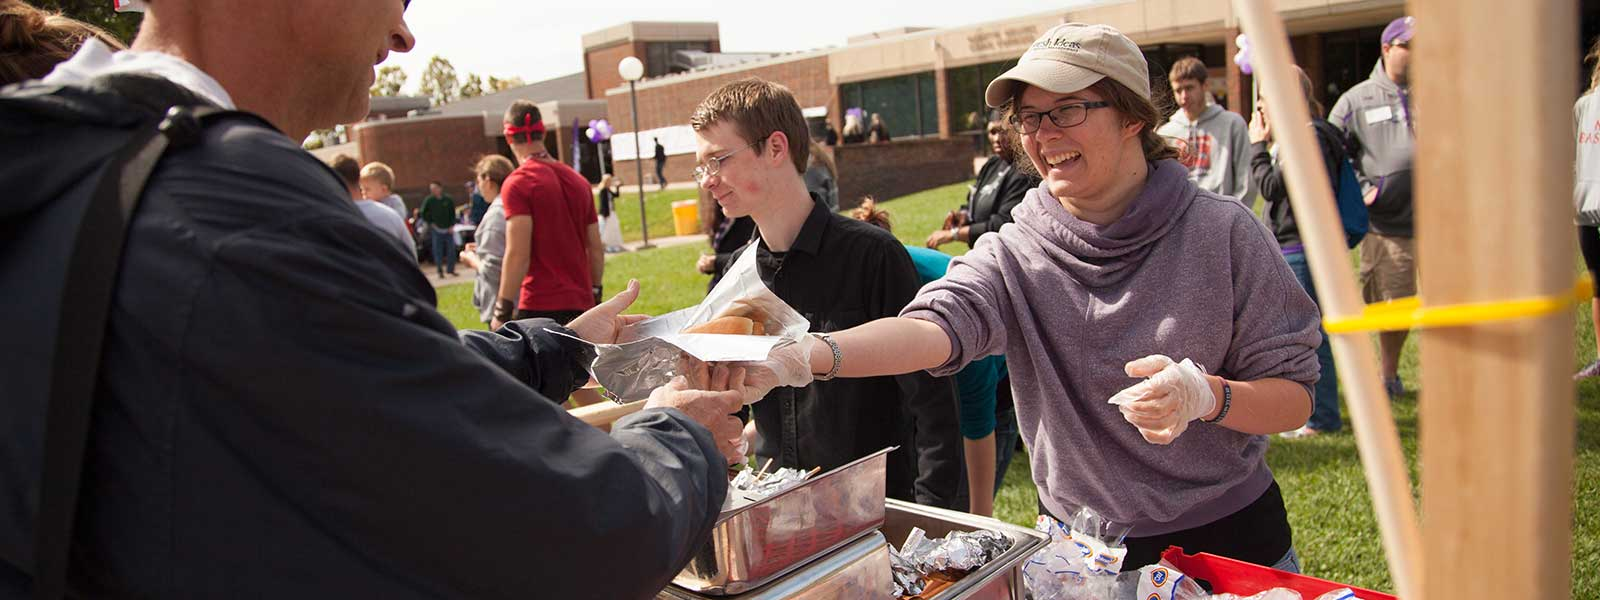 food services worker hands hot dog to man during Homecoming carnival